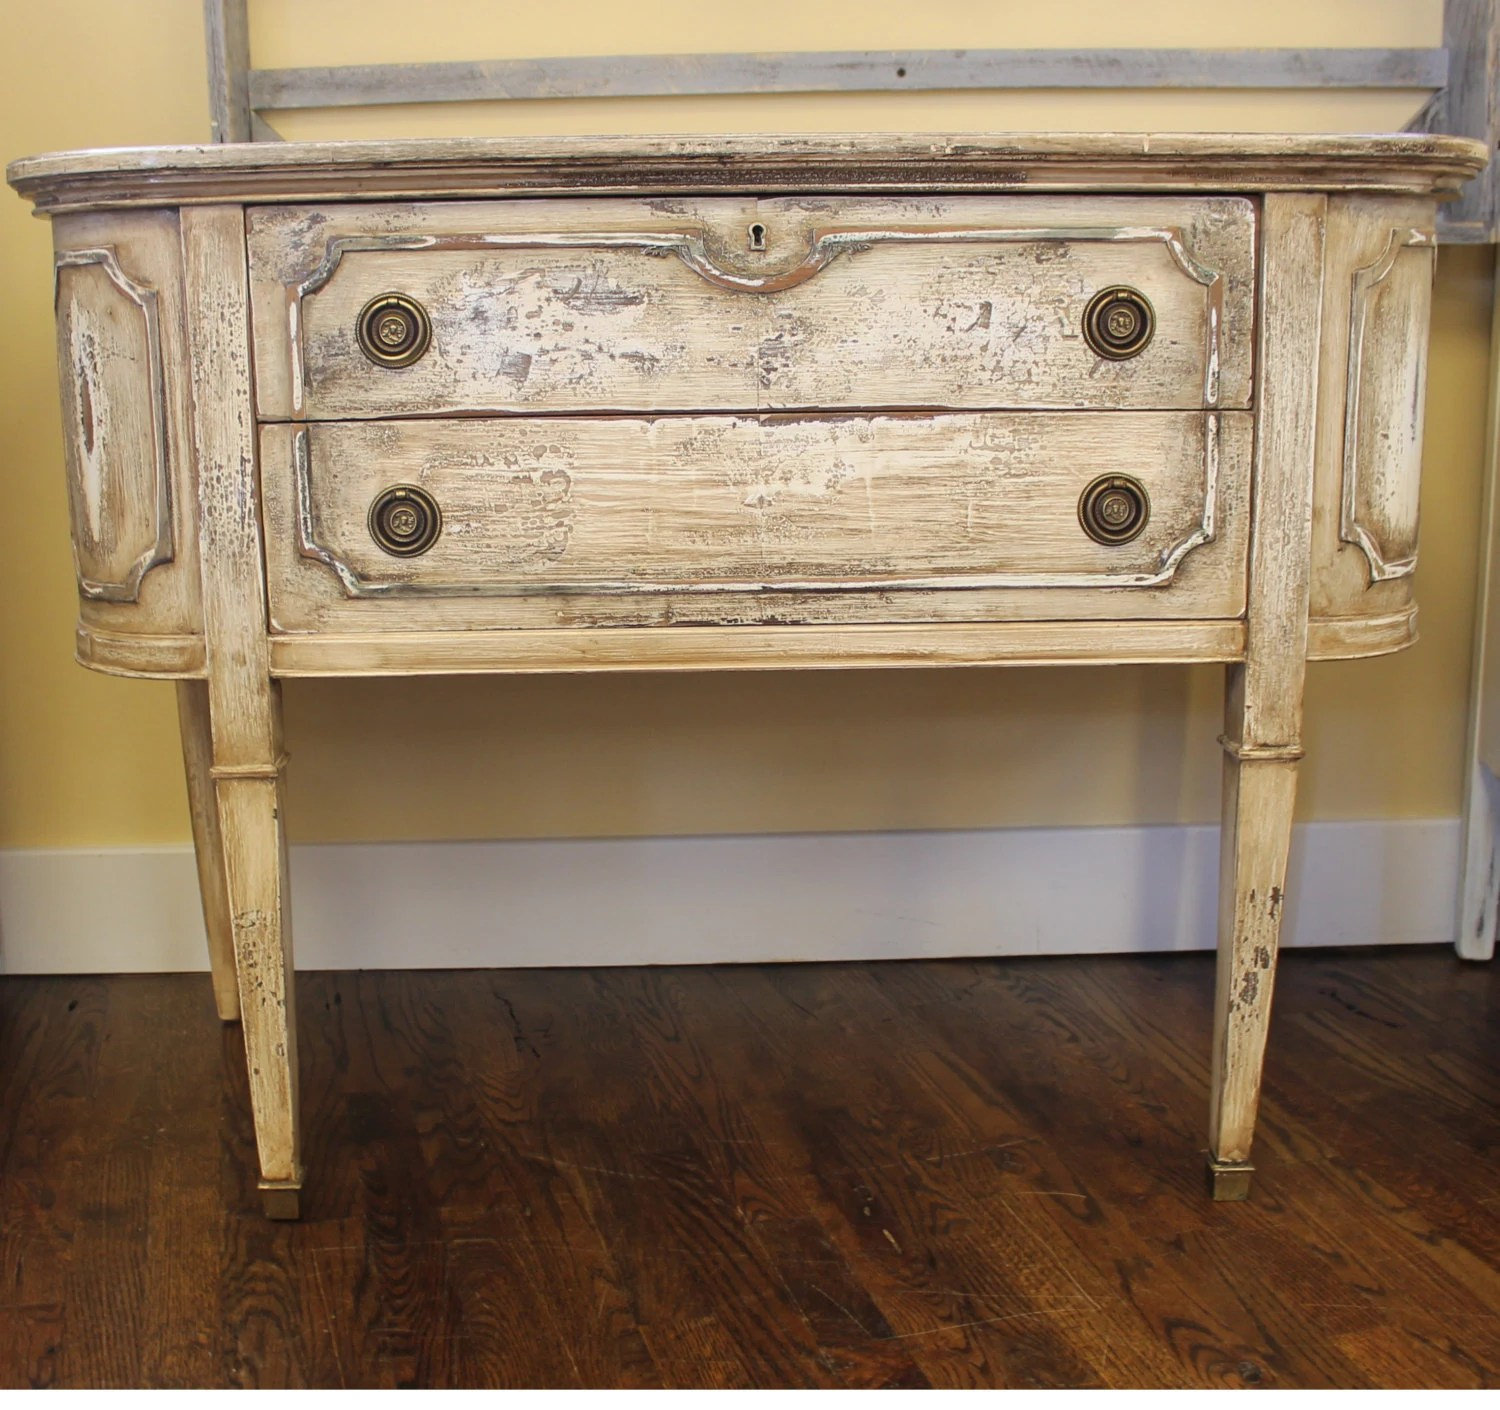 Sideboard Shabby Chic Antique French Patina Sideboard Shabby Chic Server